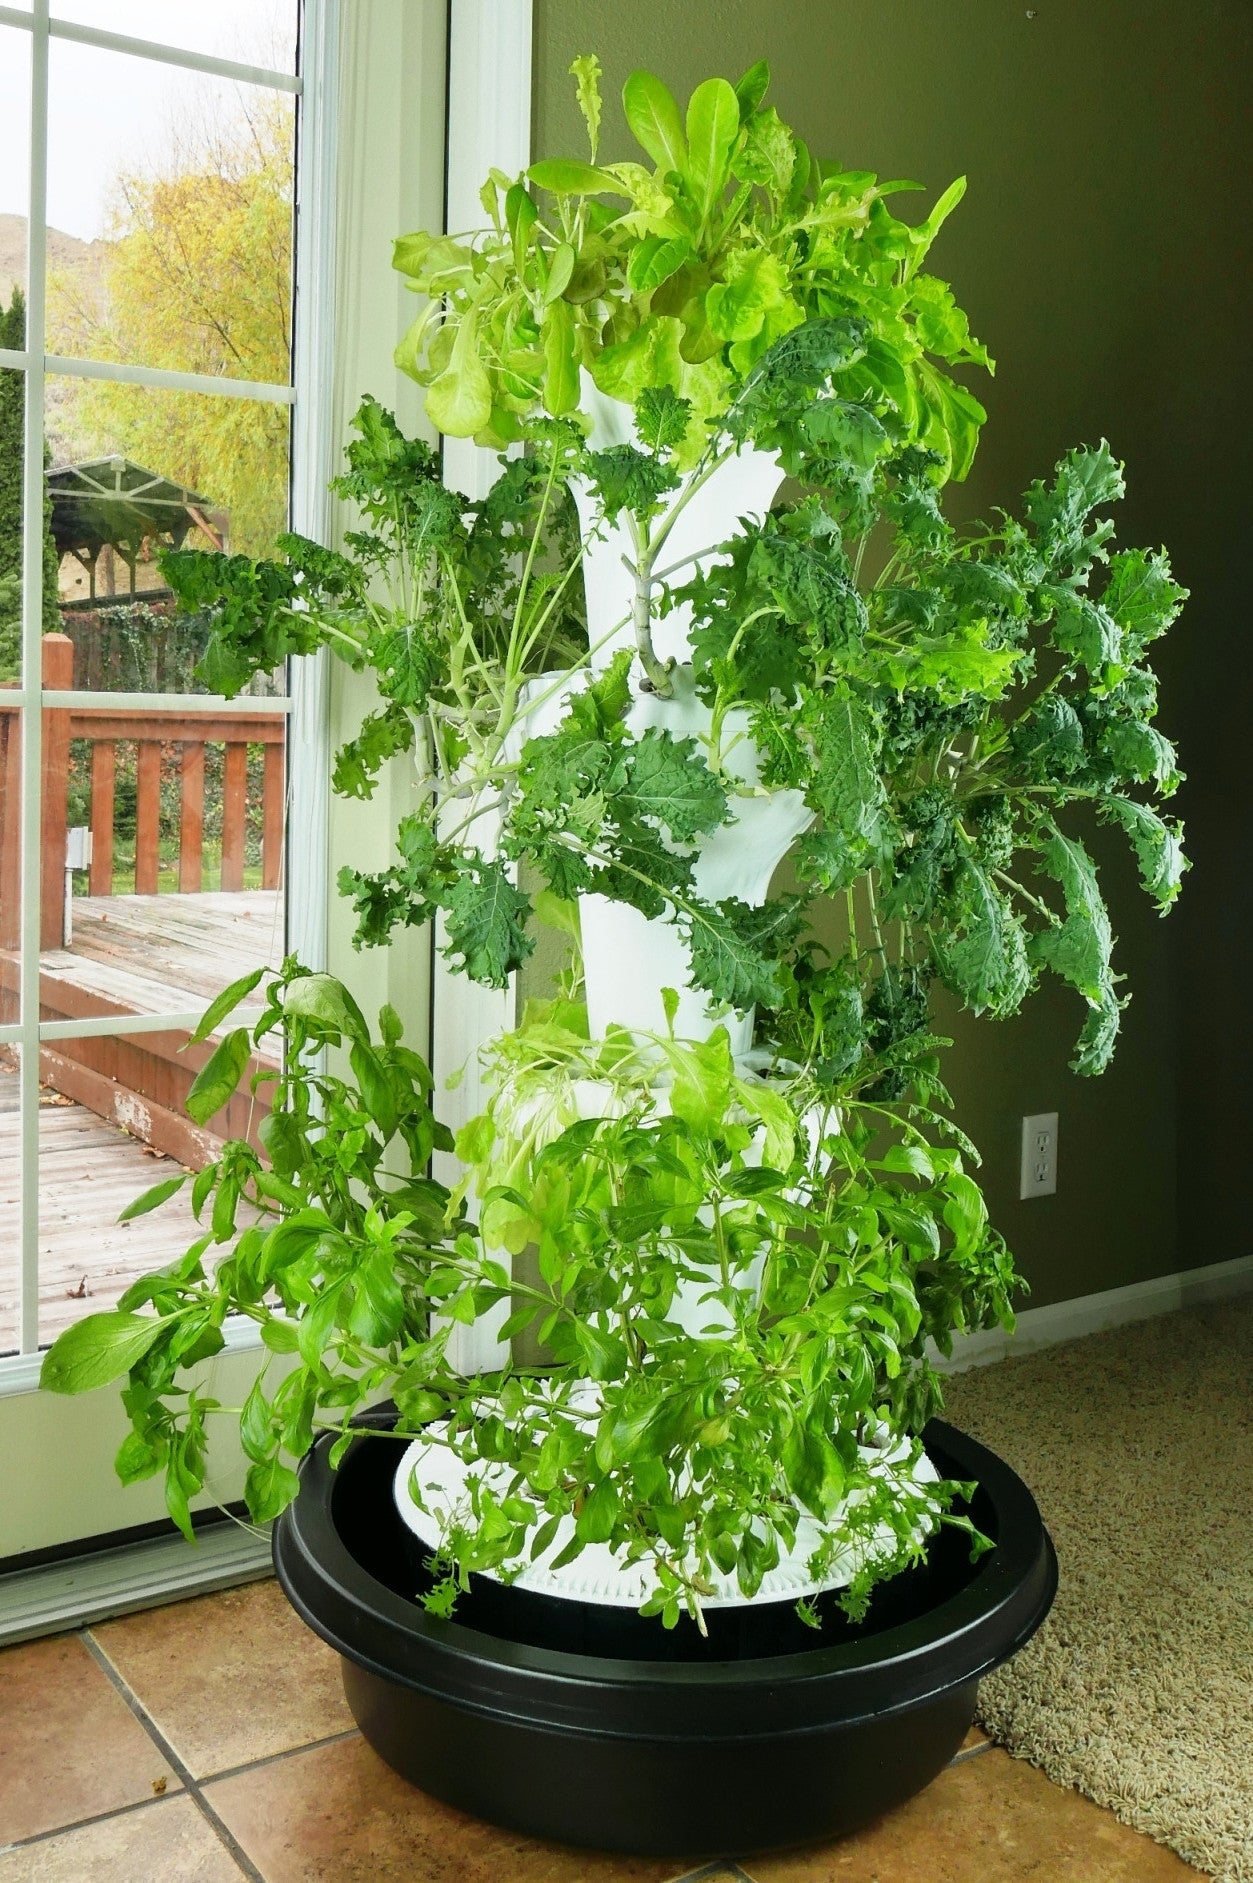 Foody 12 Hydroponic System Foody Vertical Gardens